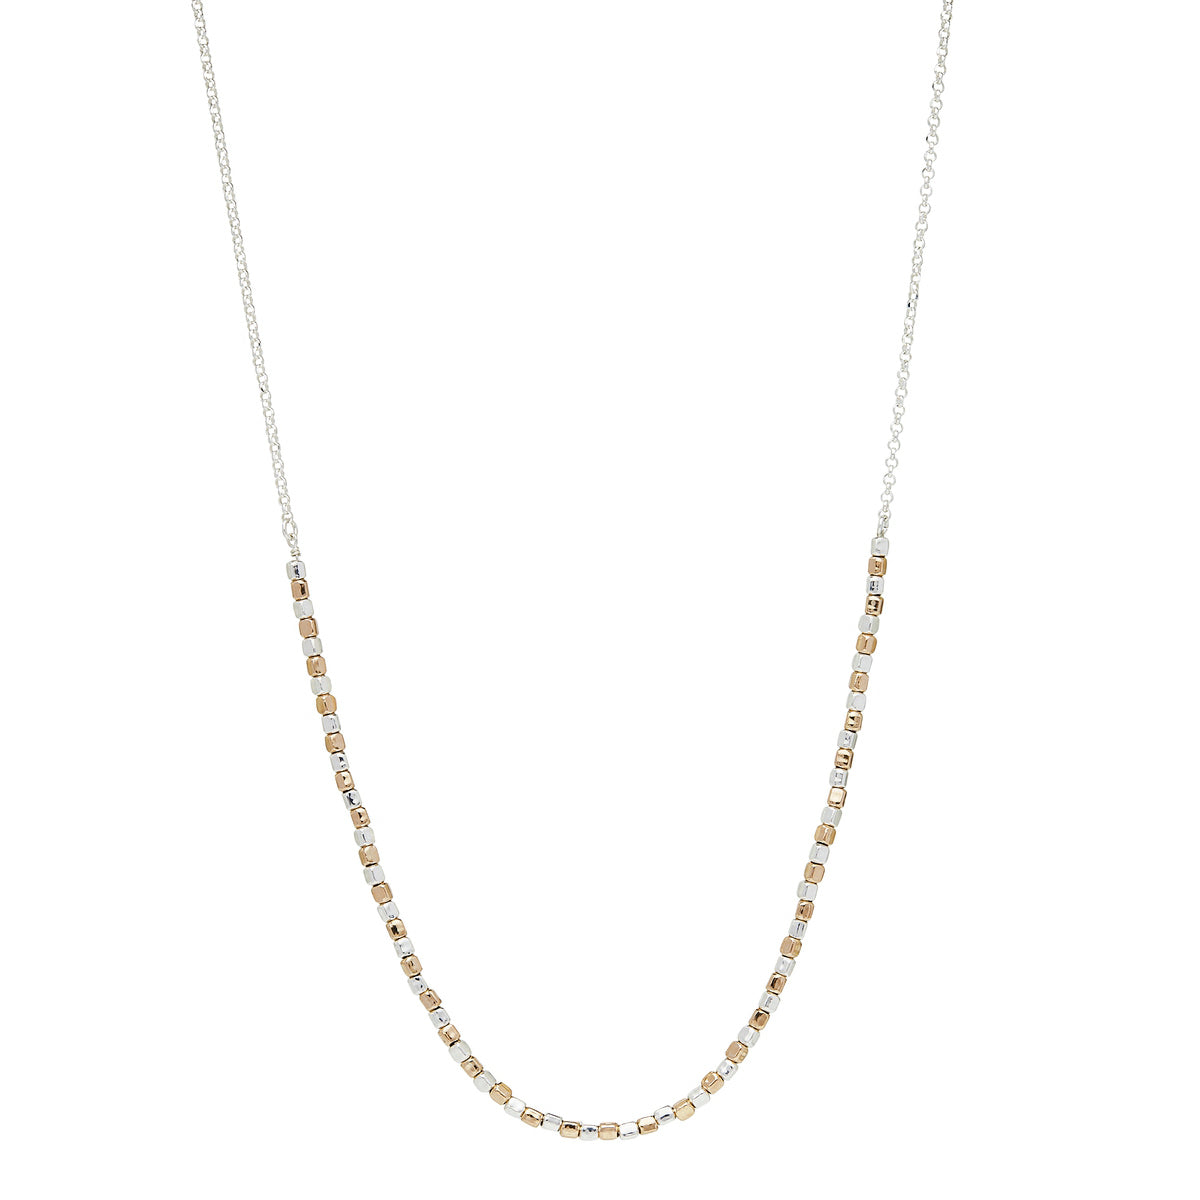 Golden Pretty Pebble Necklace